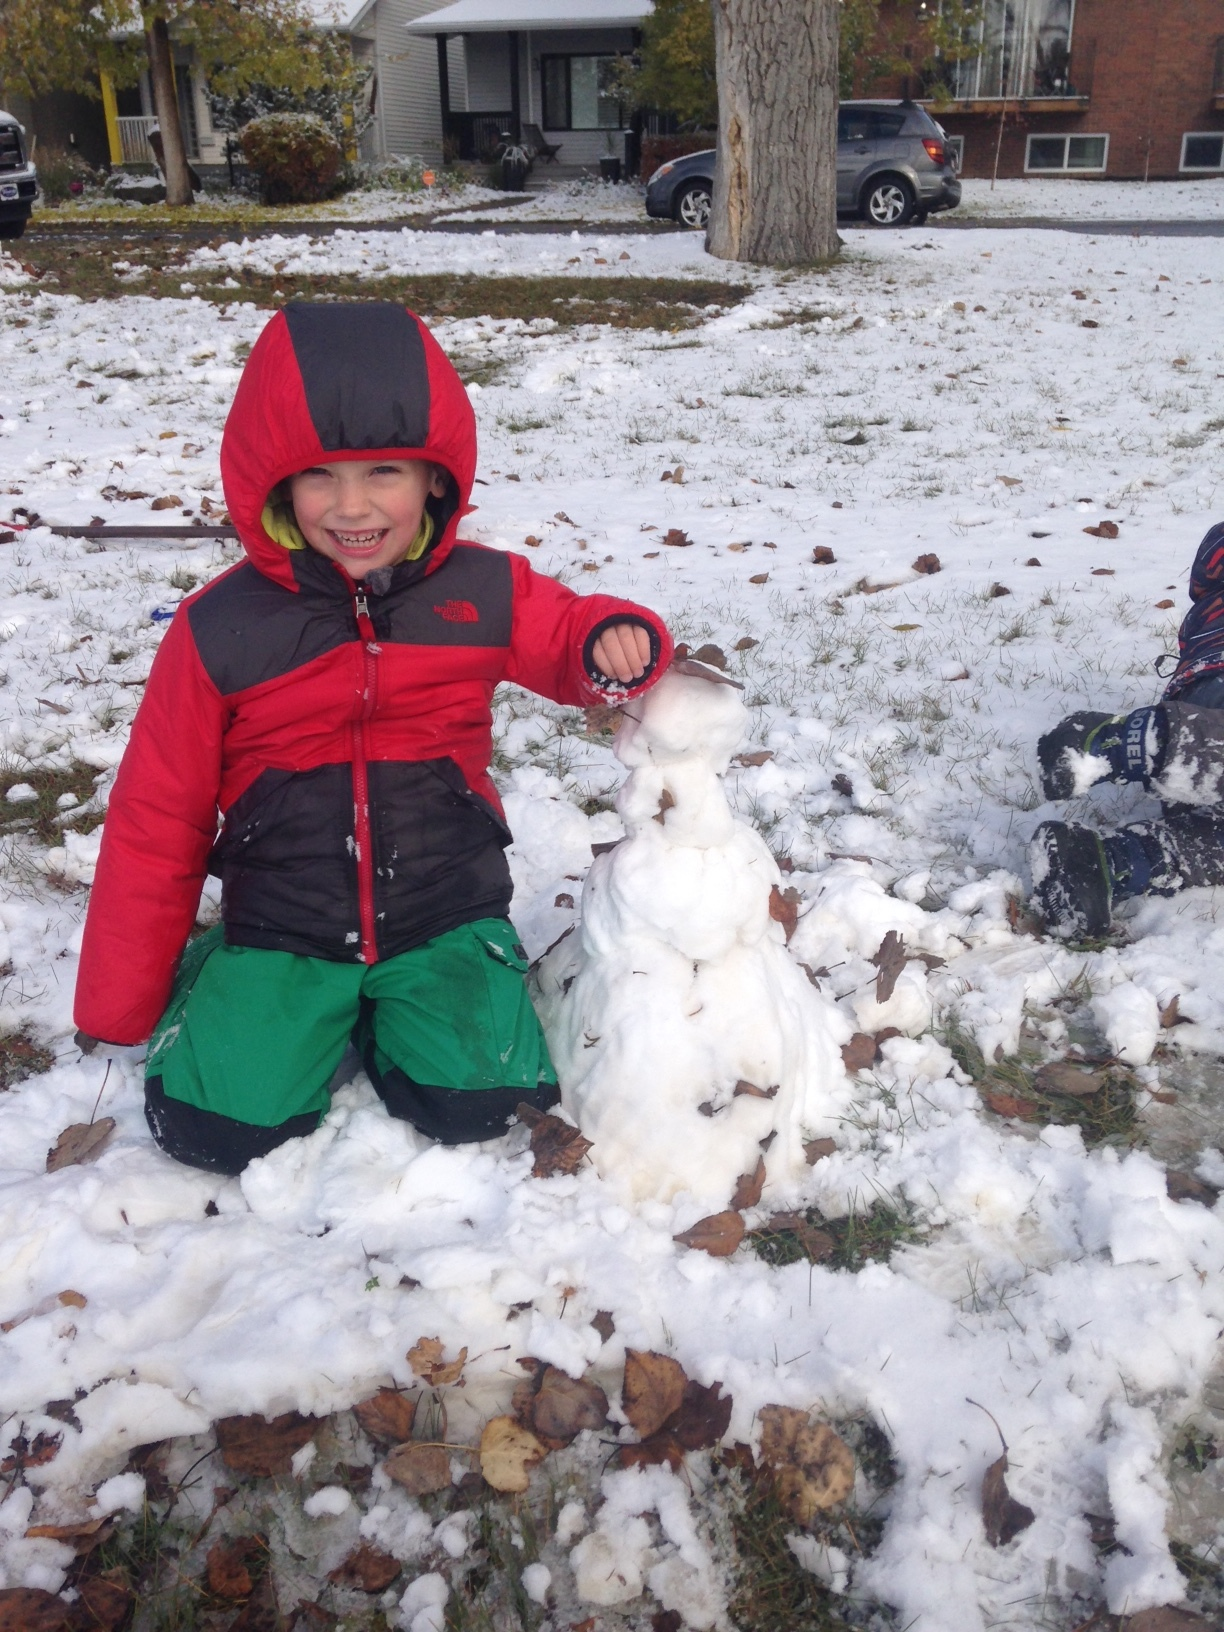 The kids decided they wanted to build a snowman on their own and this is the result.